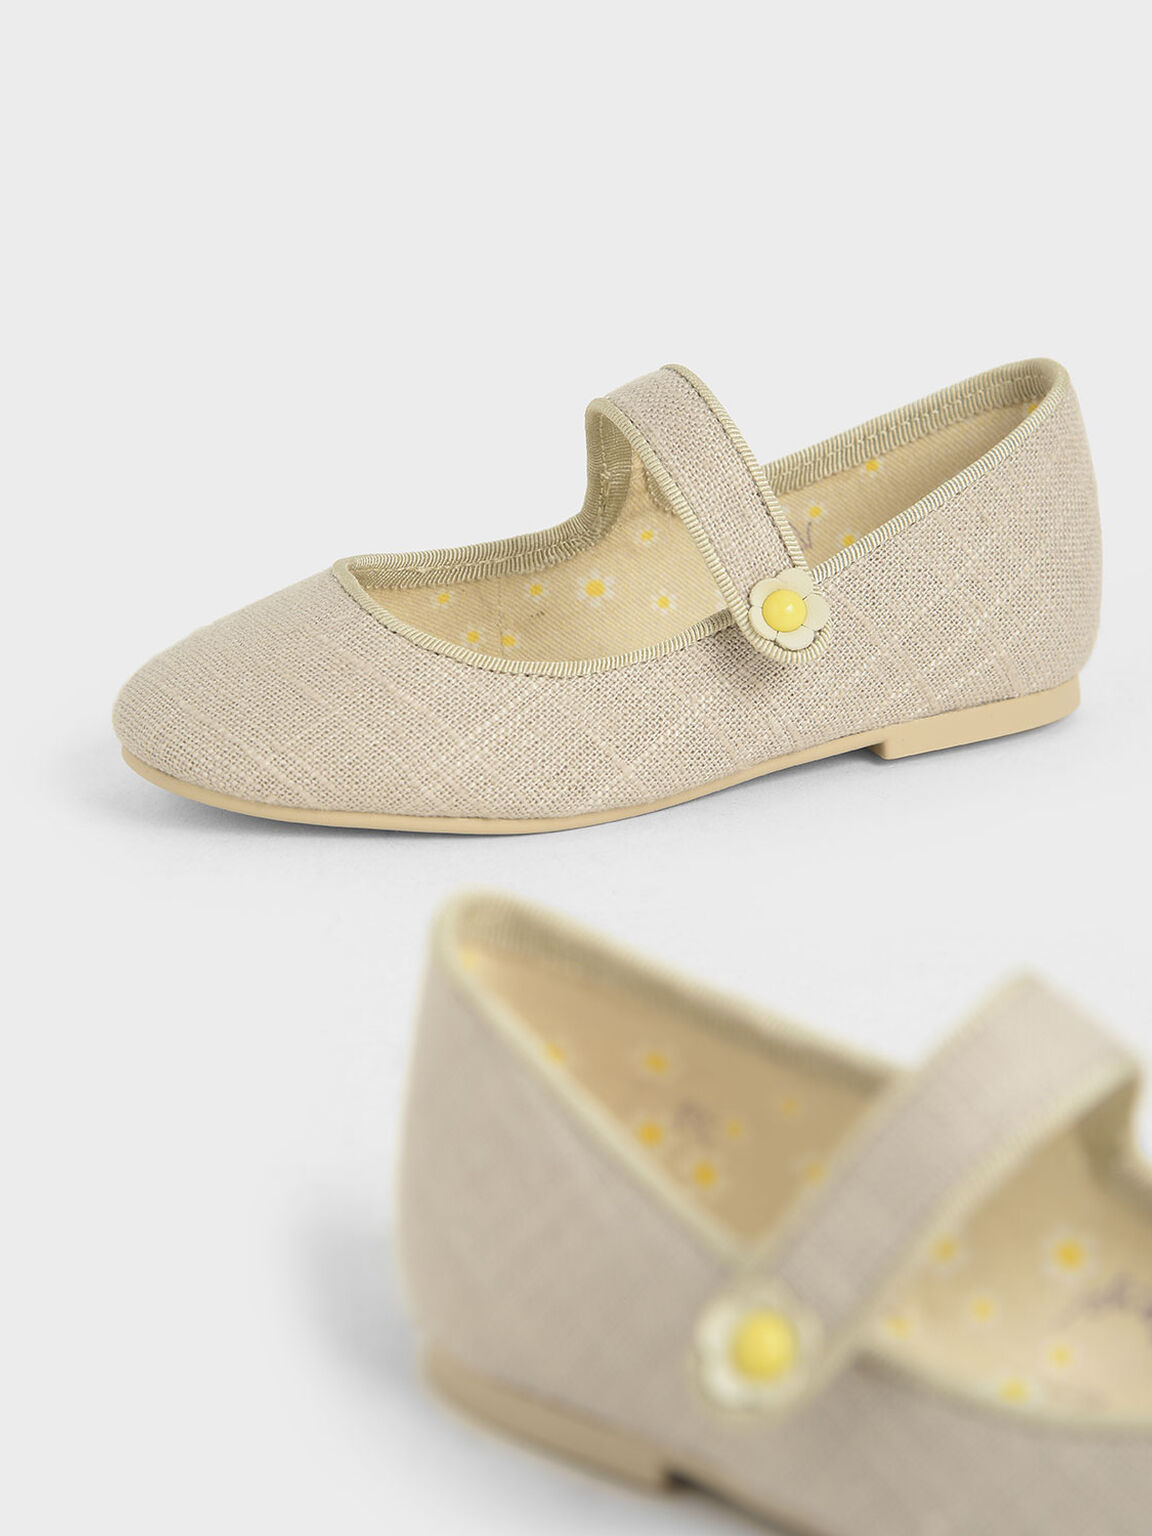 Girls' Cotton Mary Jane Ballerinas, Beige, hi-res